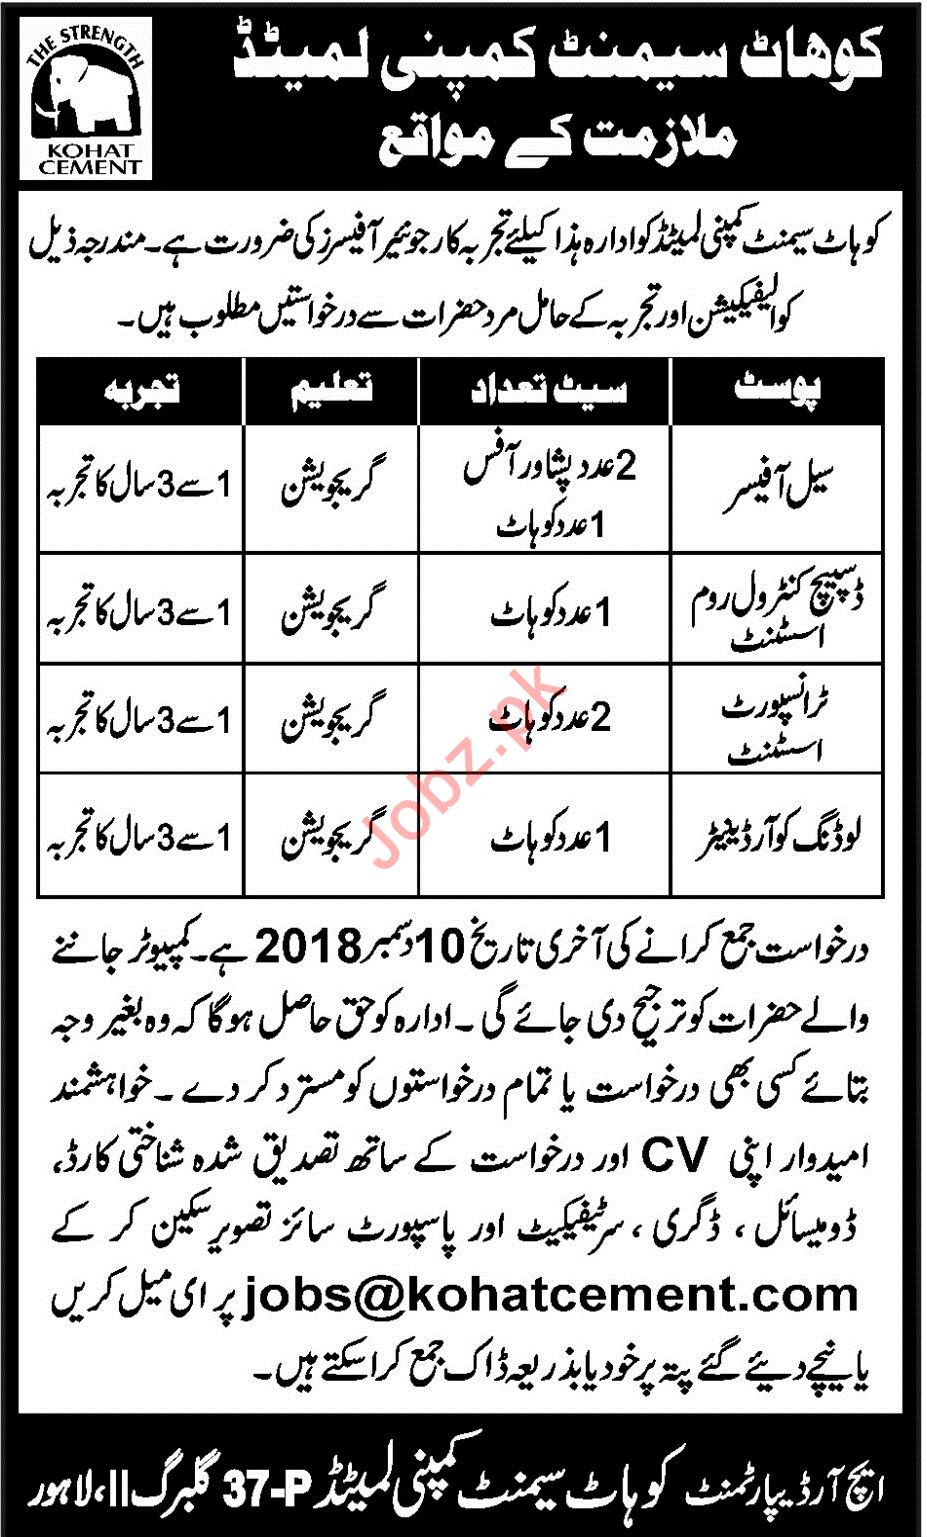 Kohat Cement Company Limited Jobs 2018 in Lahore